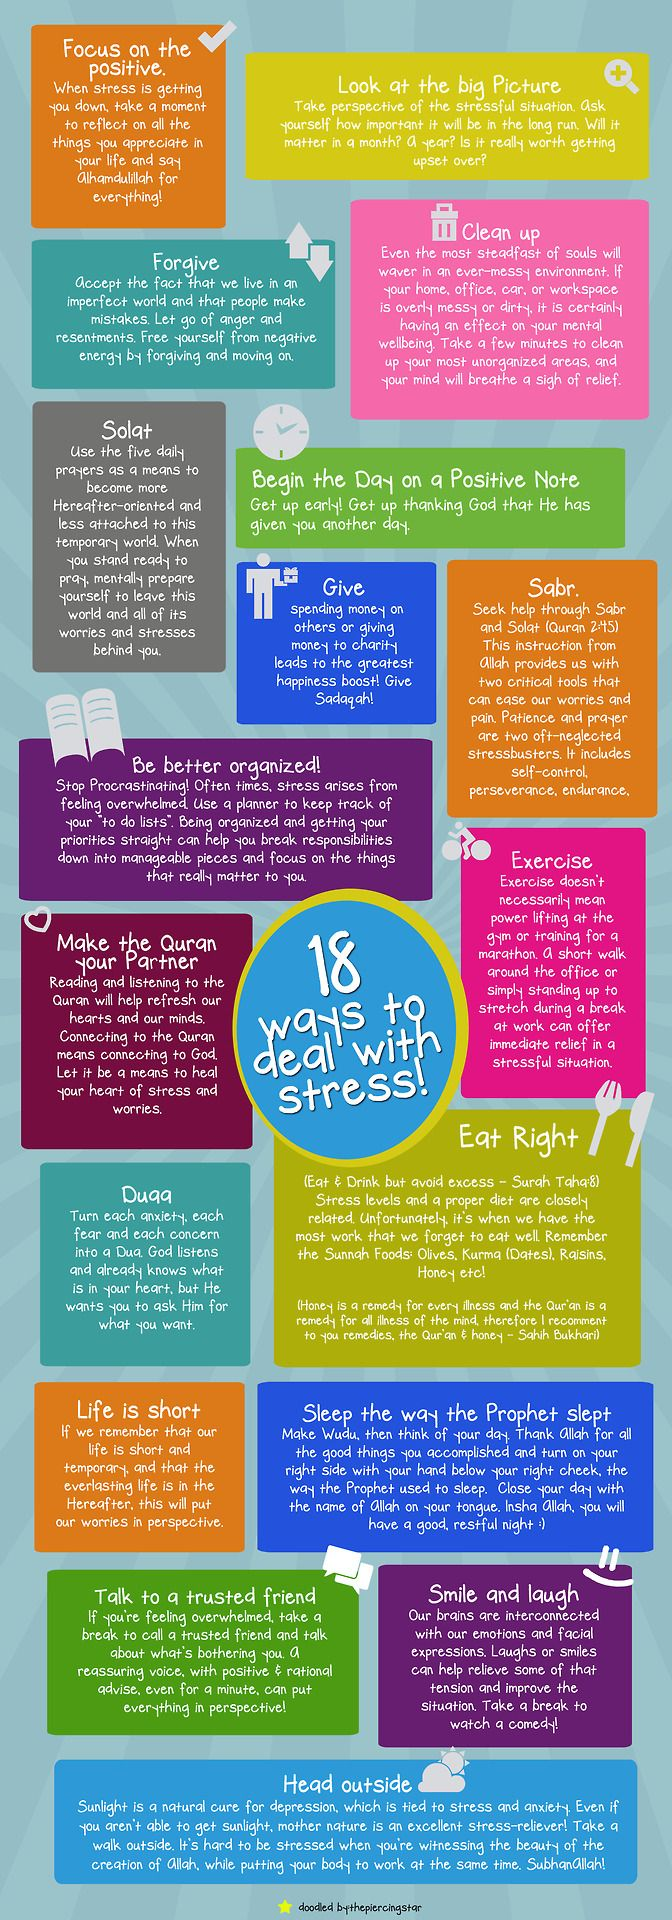 18 ways to deal with stress! Stress is inevitable. It walks in and out of our lives on a regular basis. And it can easily walk all over us unless we take action. Fortunately, there are many things you can do to minimize and cope with stress. Here are 18 ideas for handling stress without causing more strain and hassle.